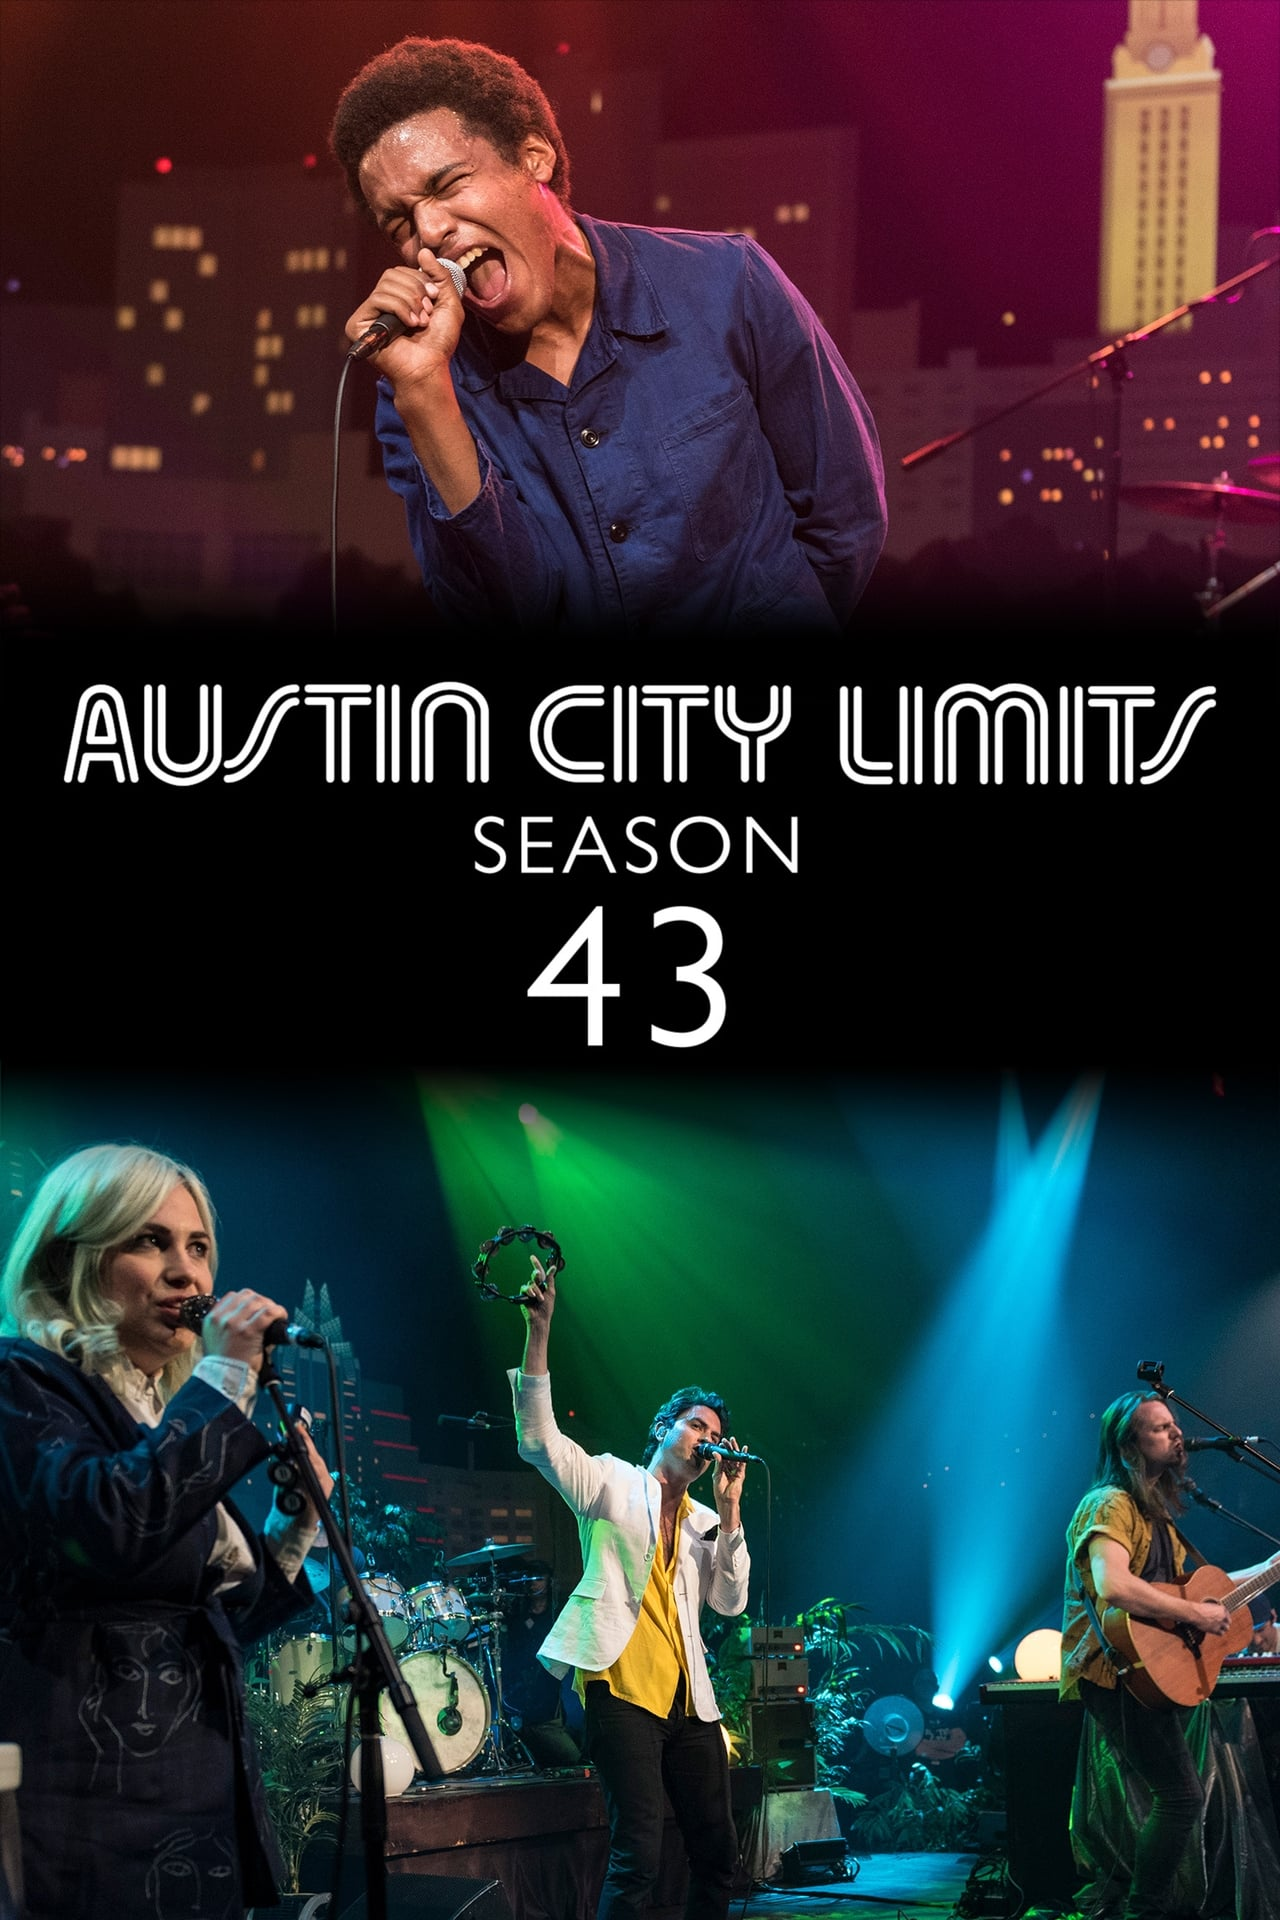 Austin City Limits Season 43 (2017) putlockers cafe